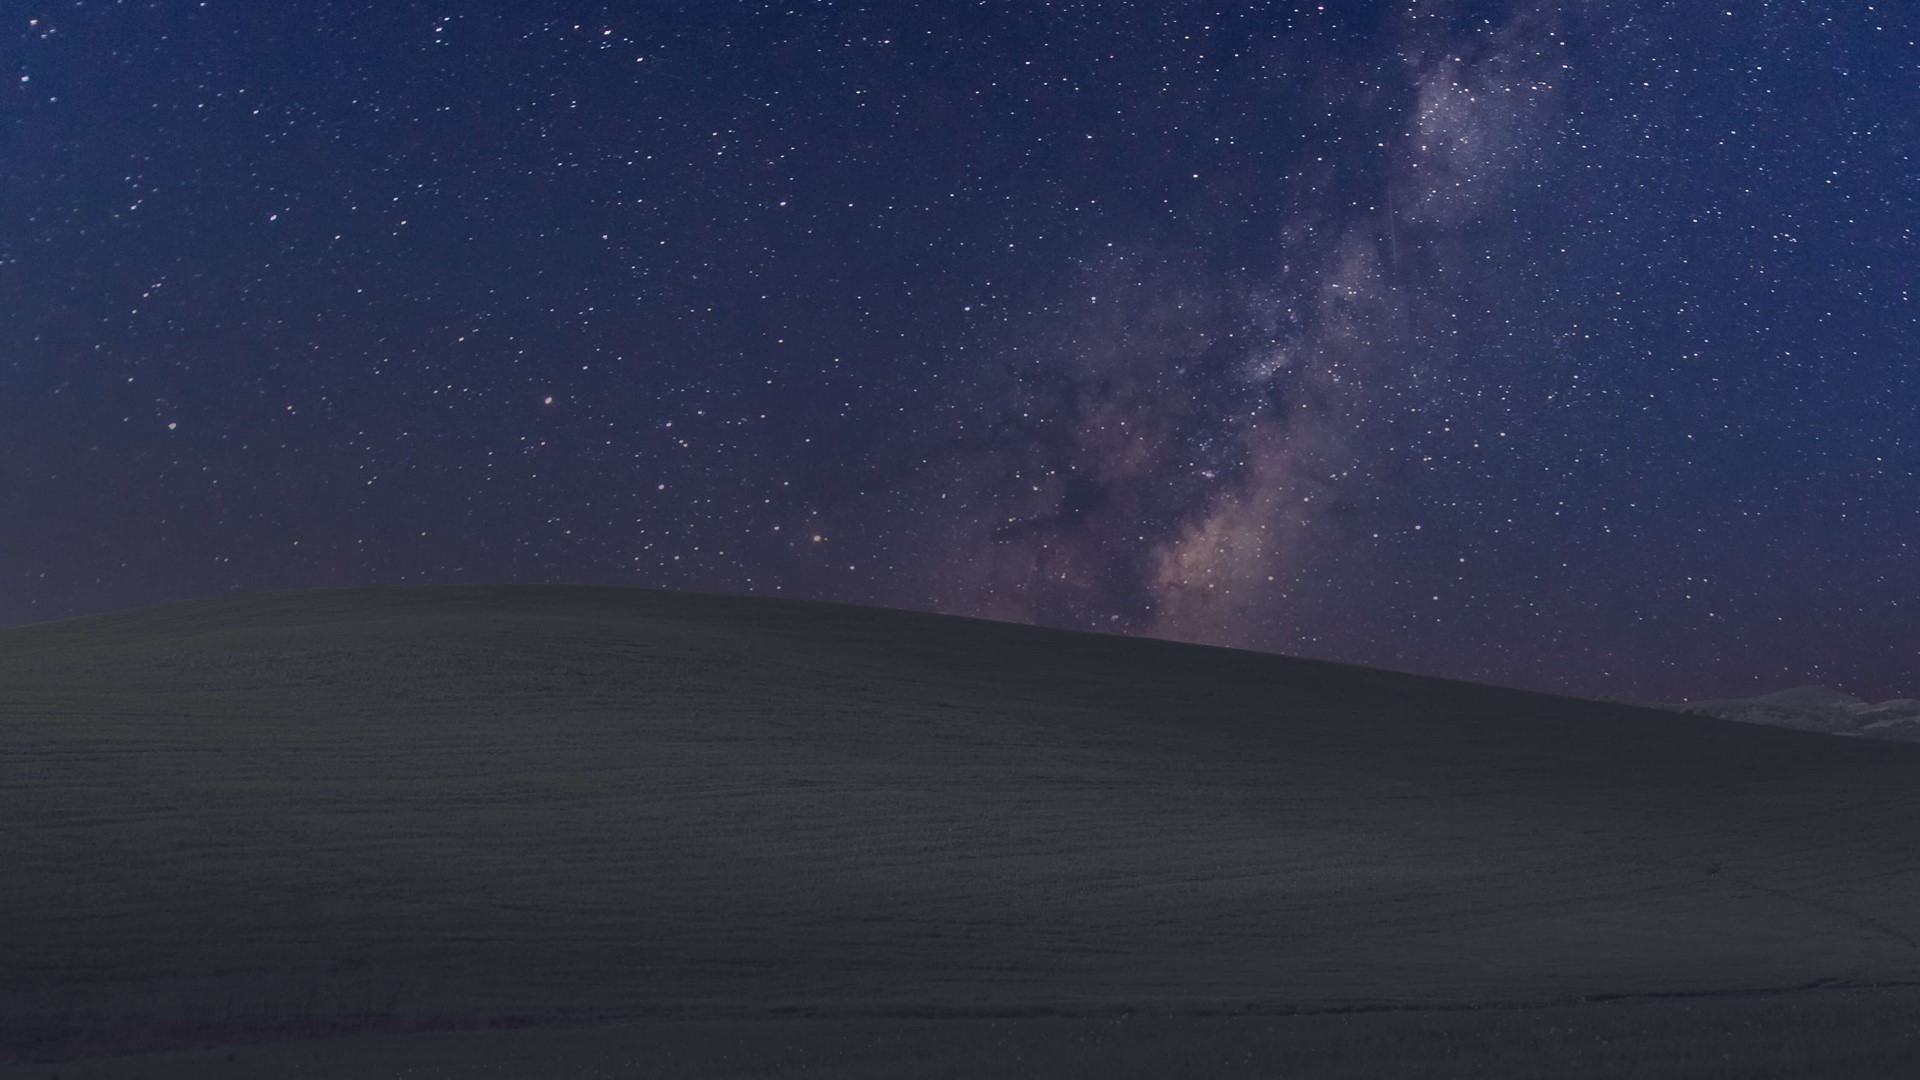 These Two Windows 10 Wallpapers Are Perfect For Your Darker Side